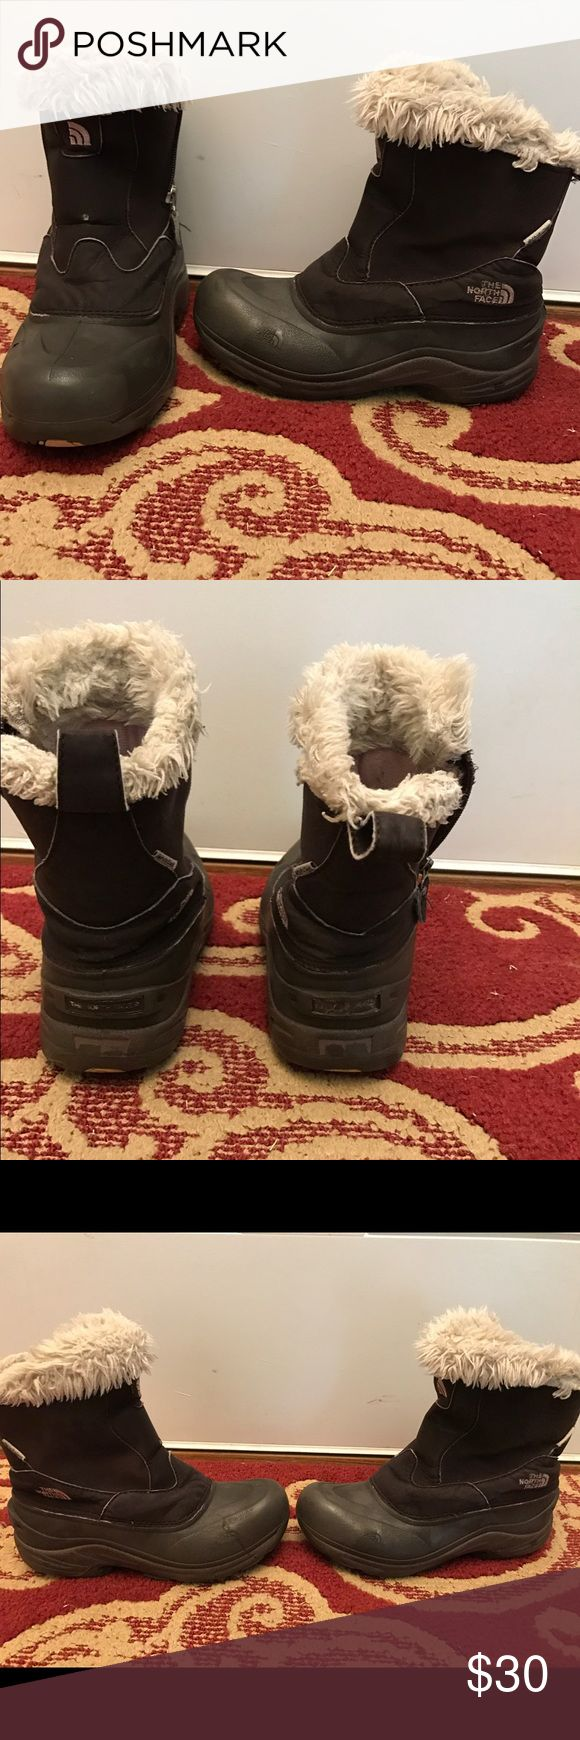 North Face Boots size 4 🎀offers welcome🎀 Great pair of extremely warm North Face boots. Girls size 4. Left boot has small indent of the North Face logo on Bolton of shoe. Smoke free home.  Next day shipping. Please feel free to ask any questions. Thank you for shopping my closet. Offers always welcome❤️ North Face Shoes Rain & Snow Boots